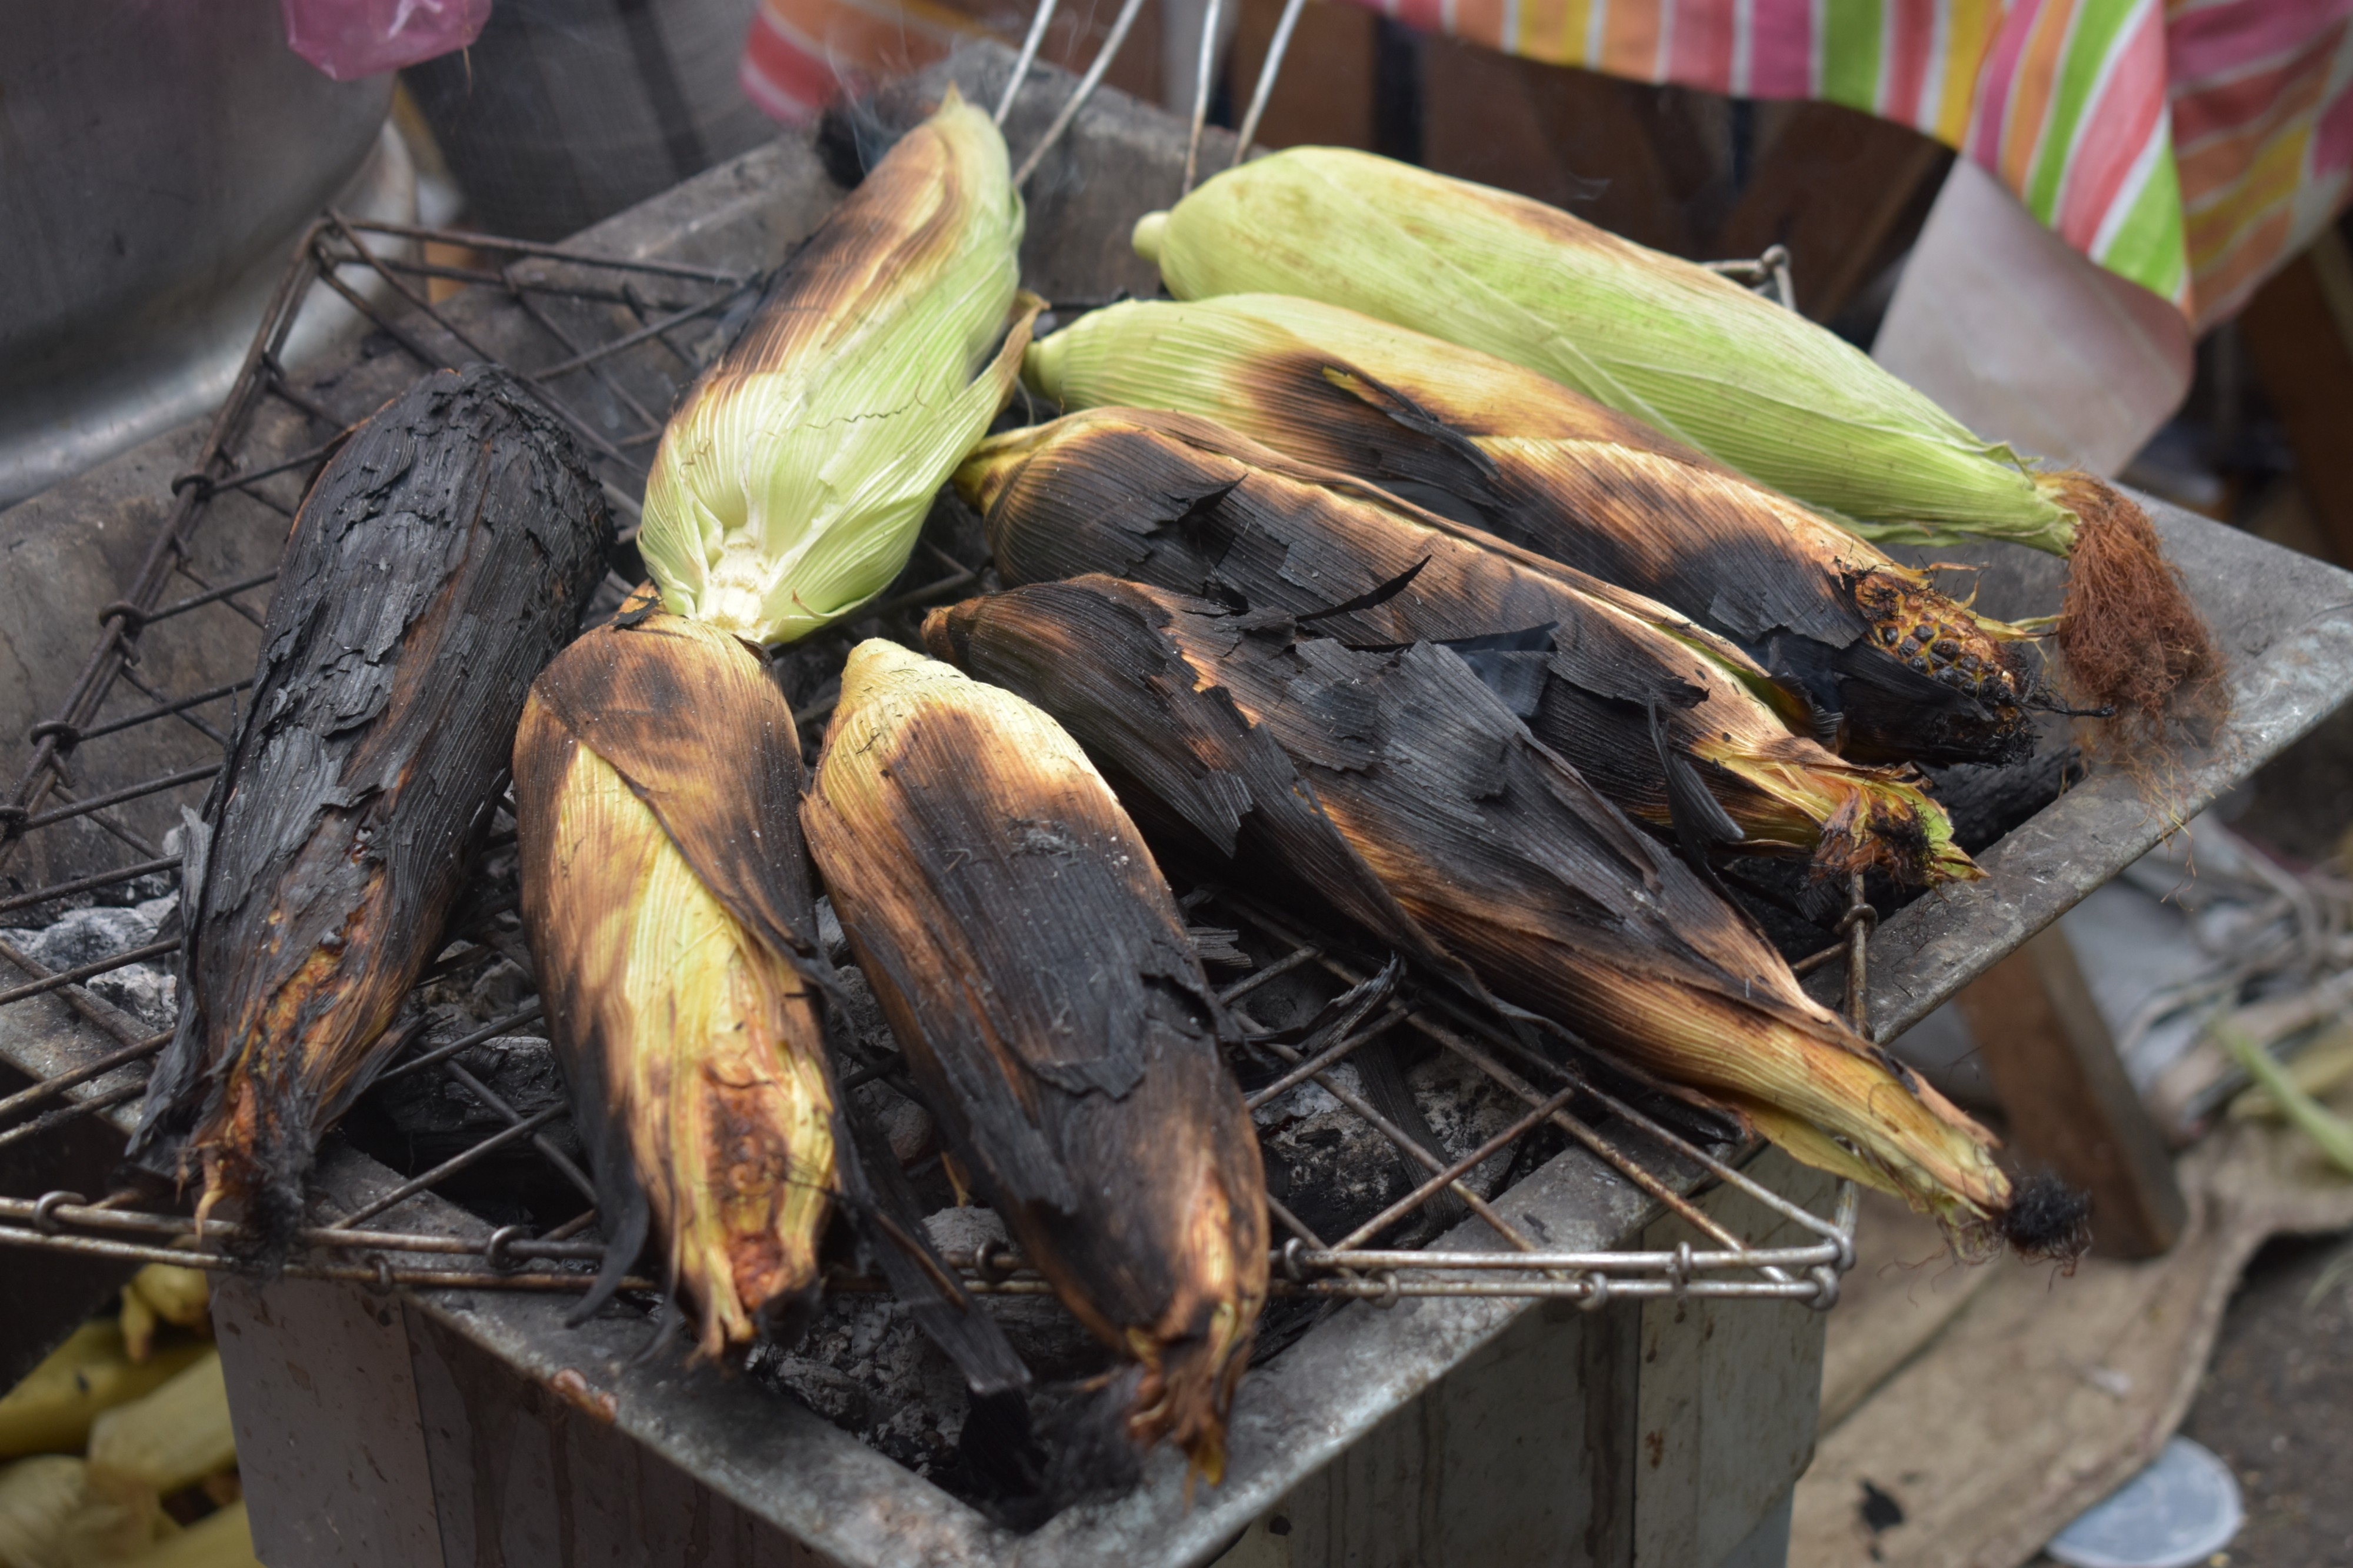 Grill corn with husk on corn, corn with husk burning on grill in Oaxaca, Mexico. Mexican corn — food, cooking corn